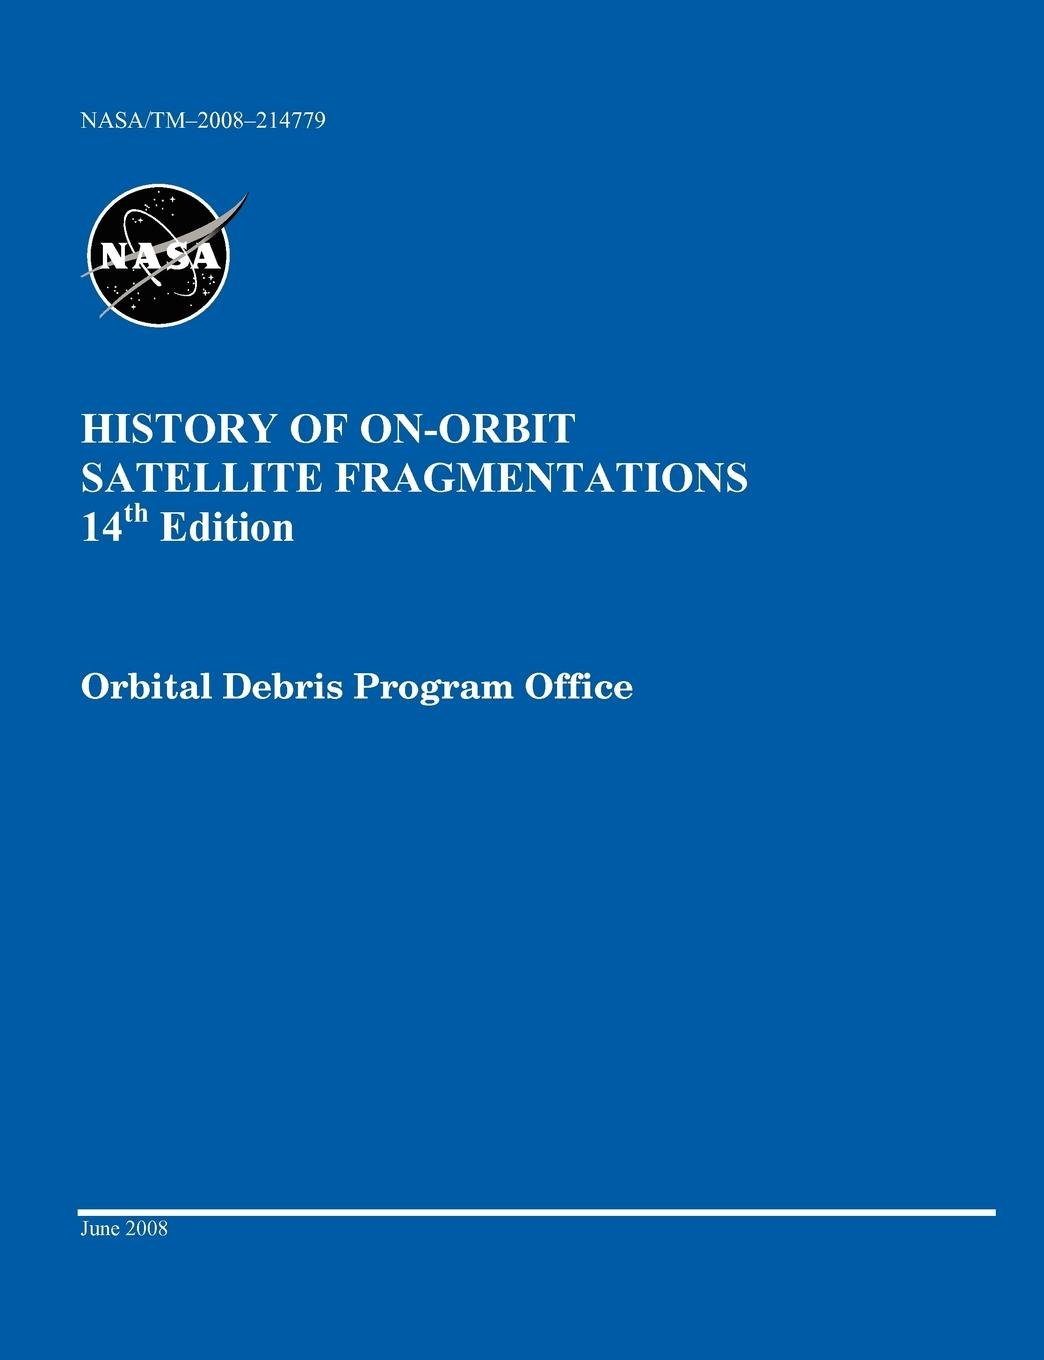 History of On-orbit Satellite Fragmentations (14th edition) ebook